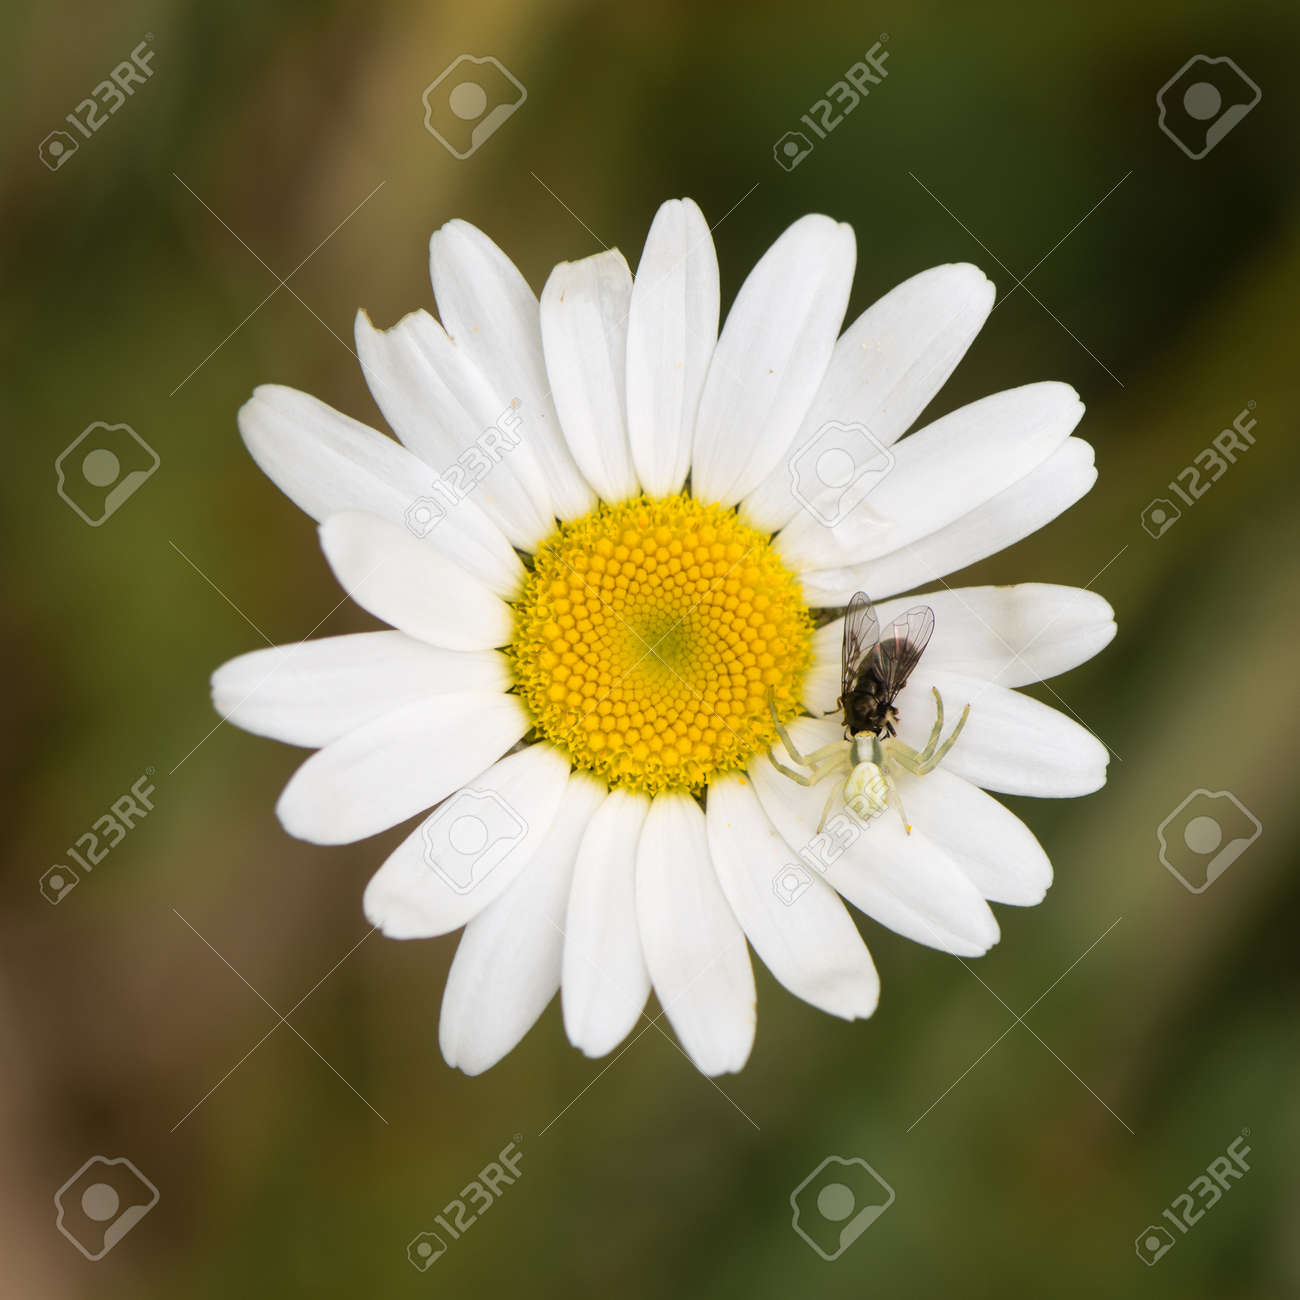 Crab spider preying bumble bee garden spiders spiders flower spiders - Flower Crab Spider Misumena Vatia Crab Spider With Fly On Daisy Camouflaged Arachnid Holding